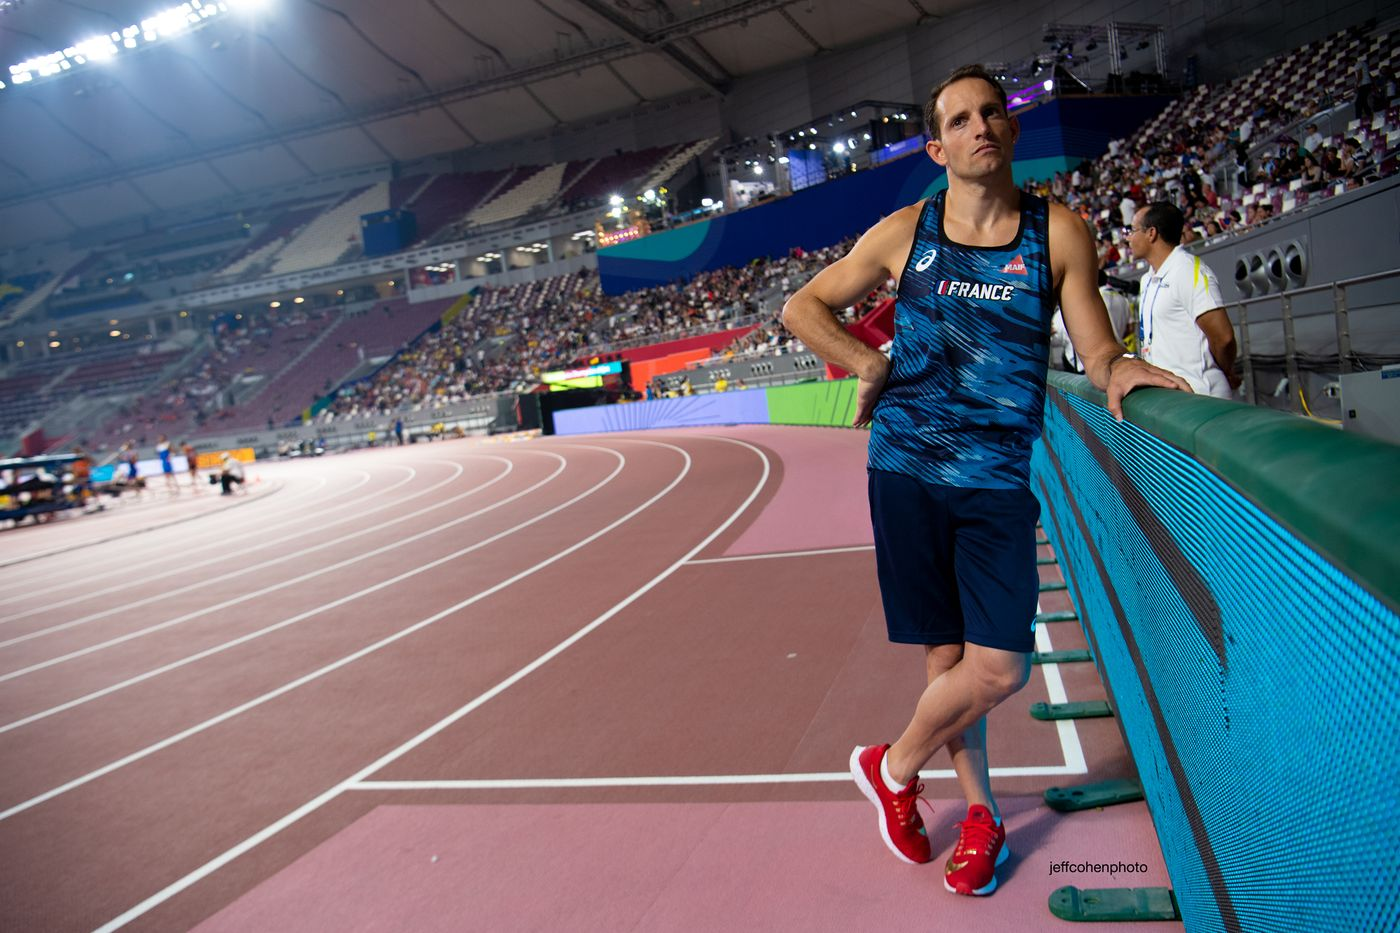 2019-DOHA-WC-day-2--3243--lavillenie-pvm--jeff-cohen-photo--web.jpg